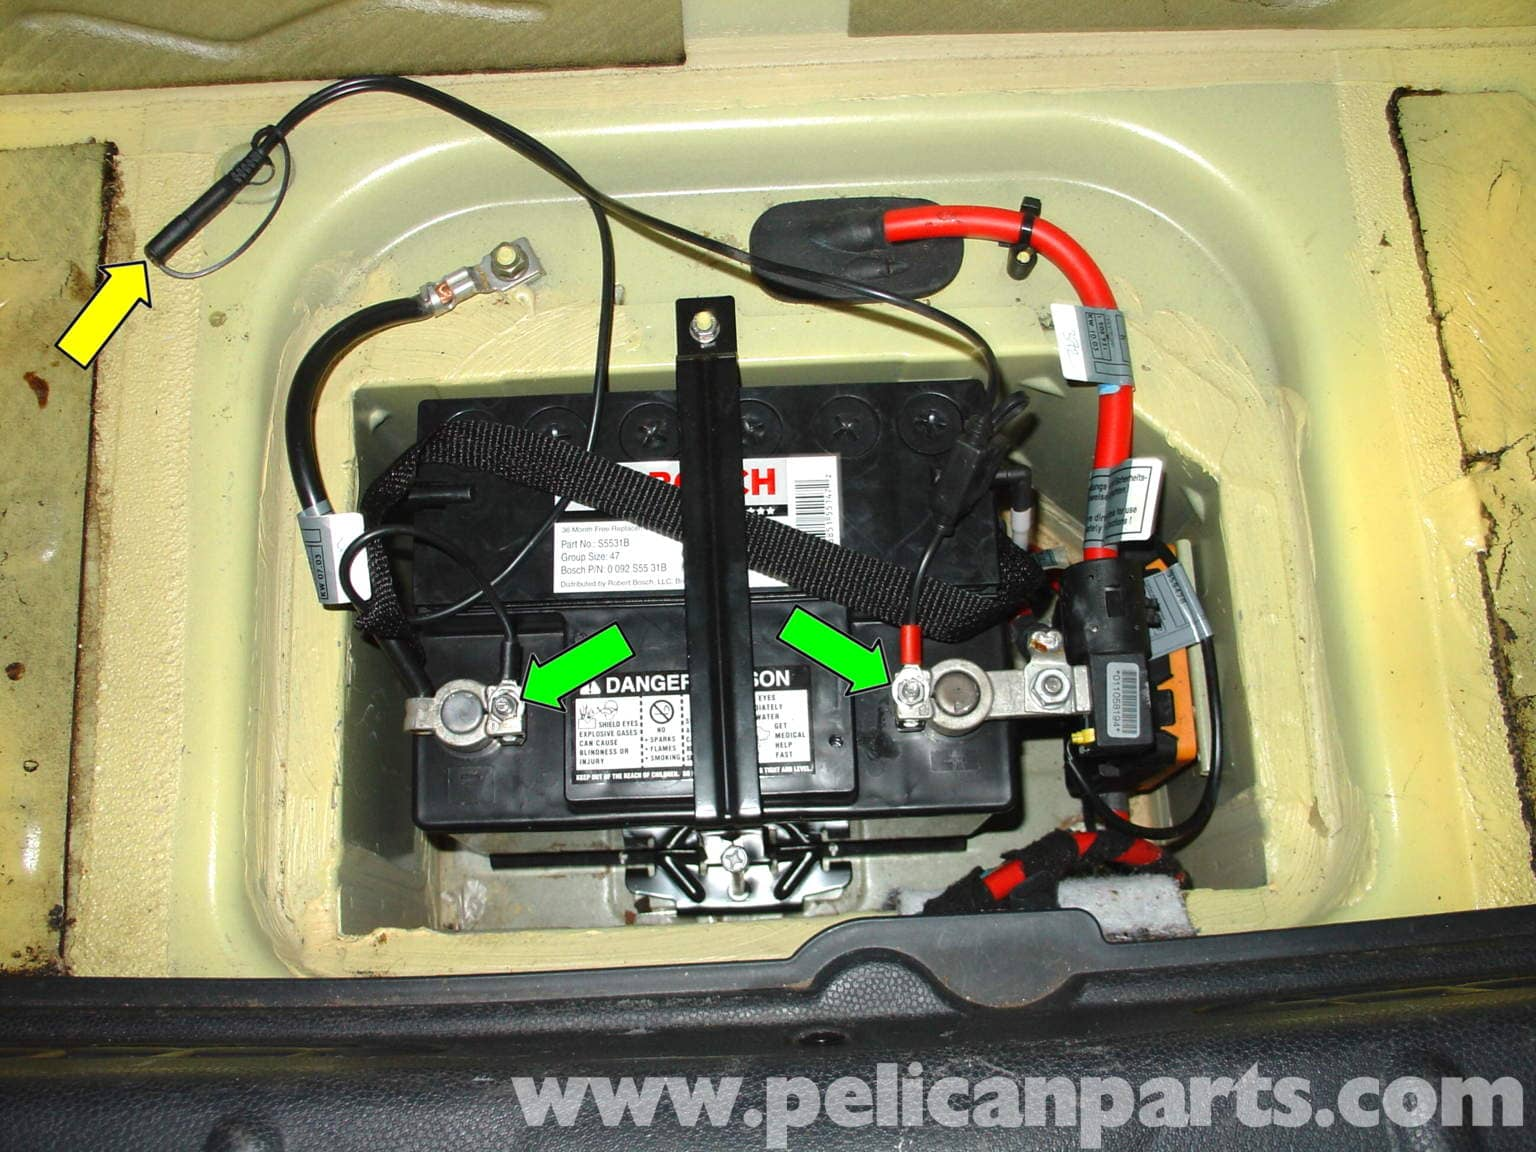 Mini Cooper Battery Replacement And Battery Tender Installation  R50  R52  R53 2001